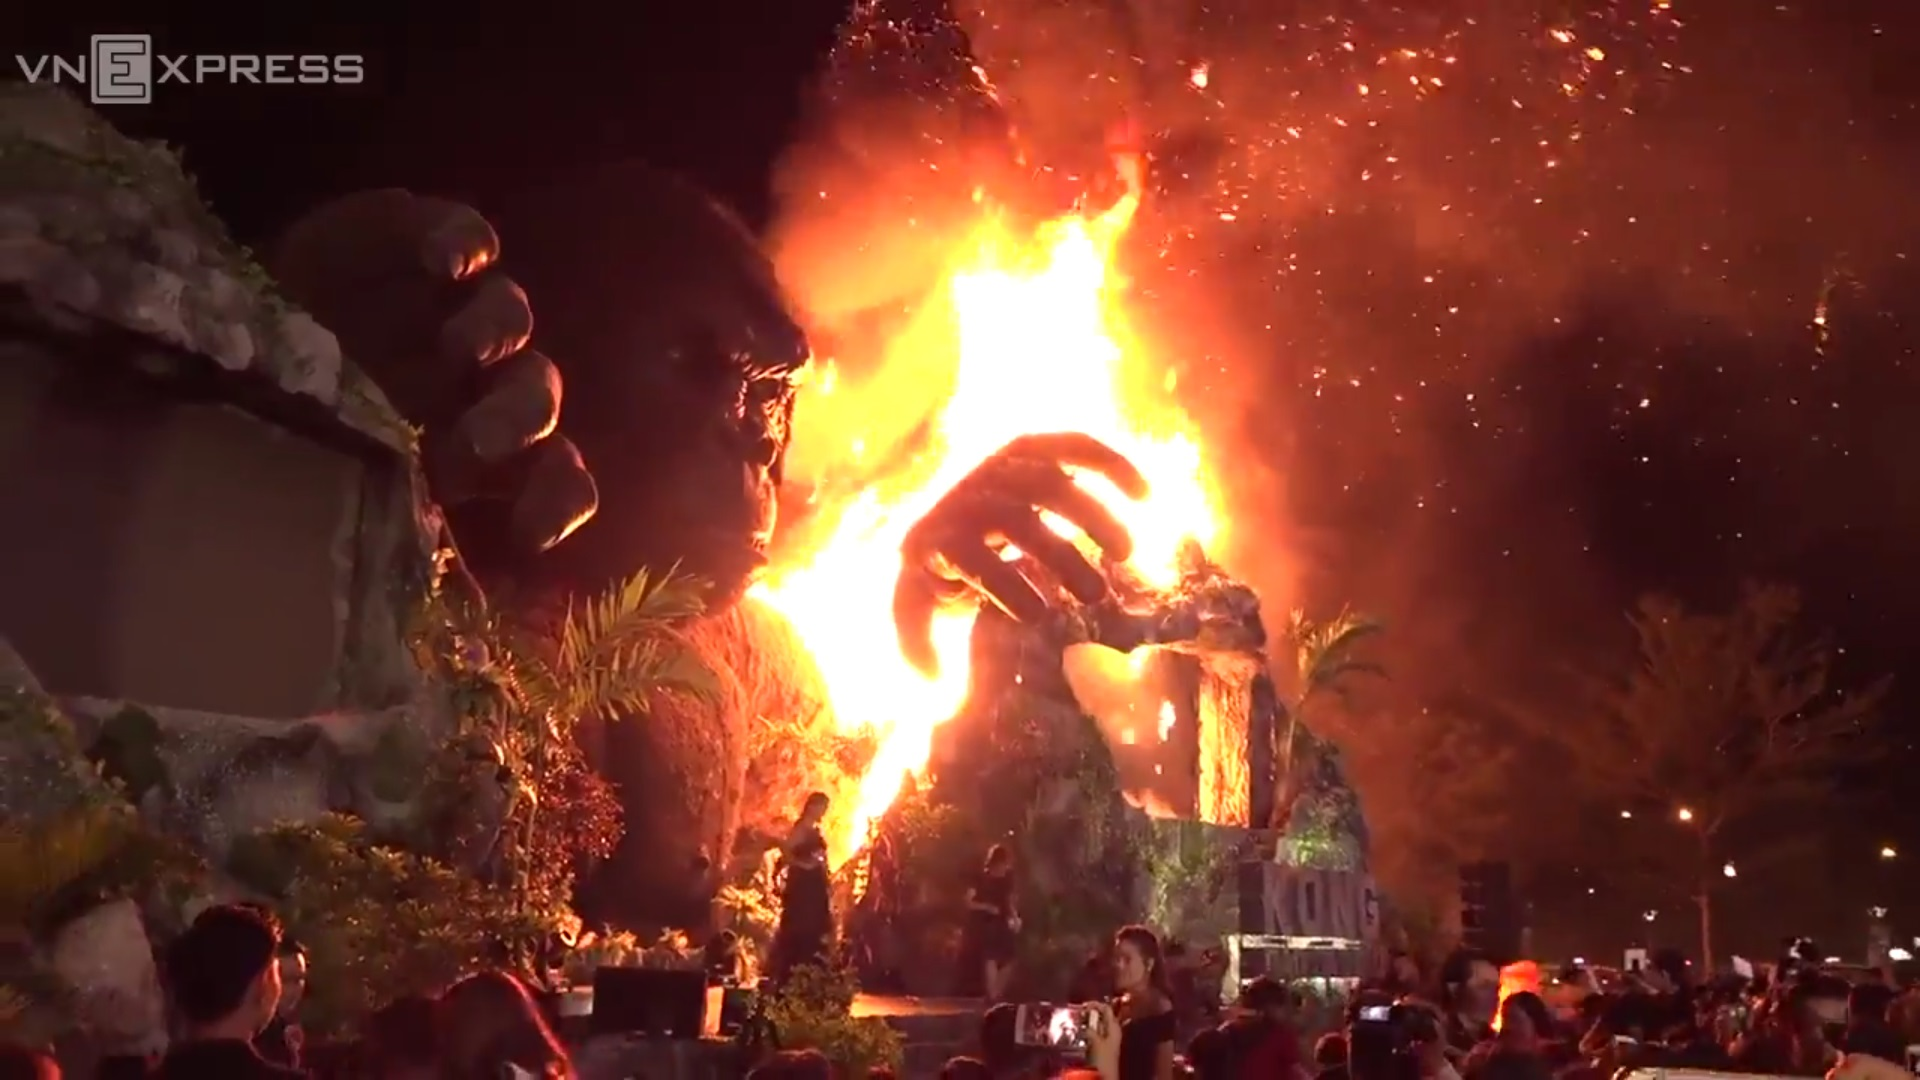 Giant King Kong Catches Fire At Saigon Premiere Of Kong Skull